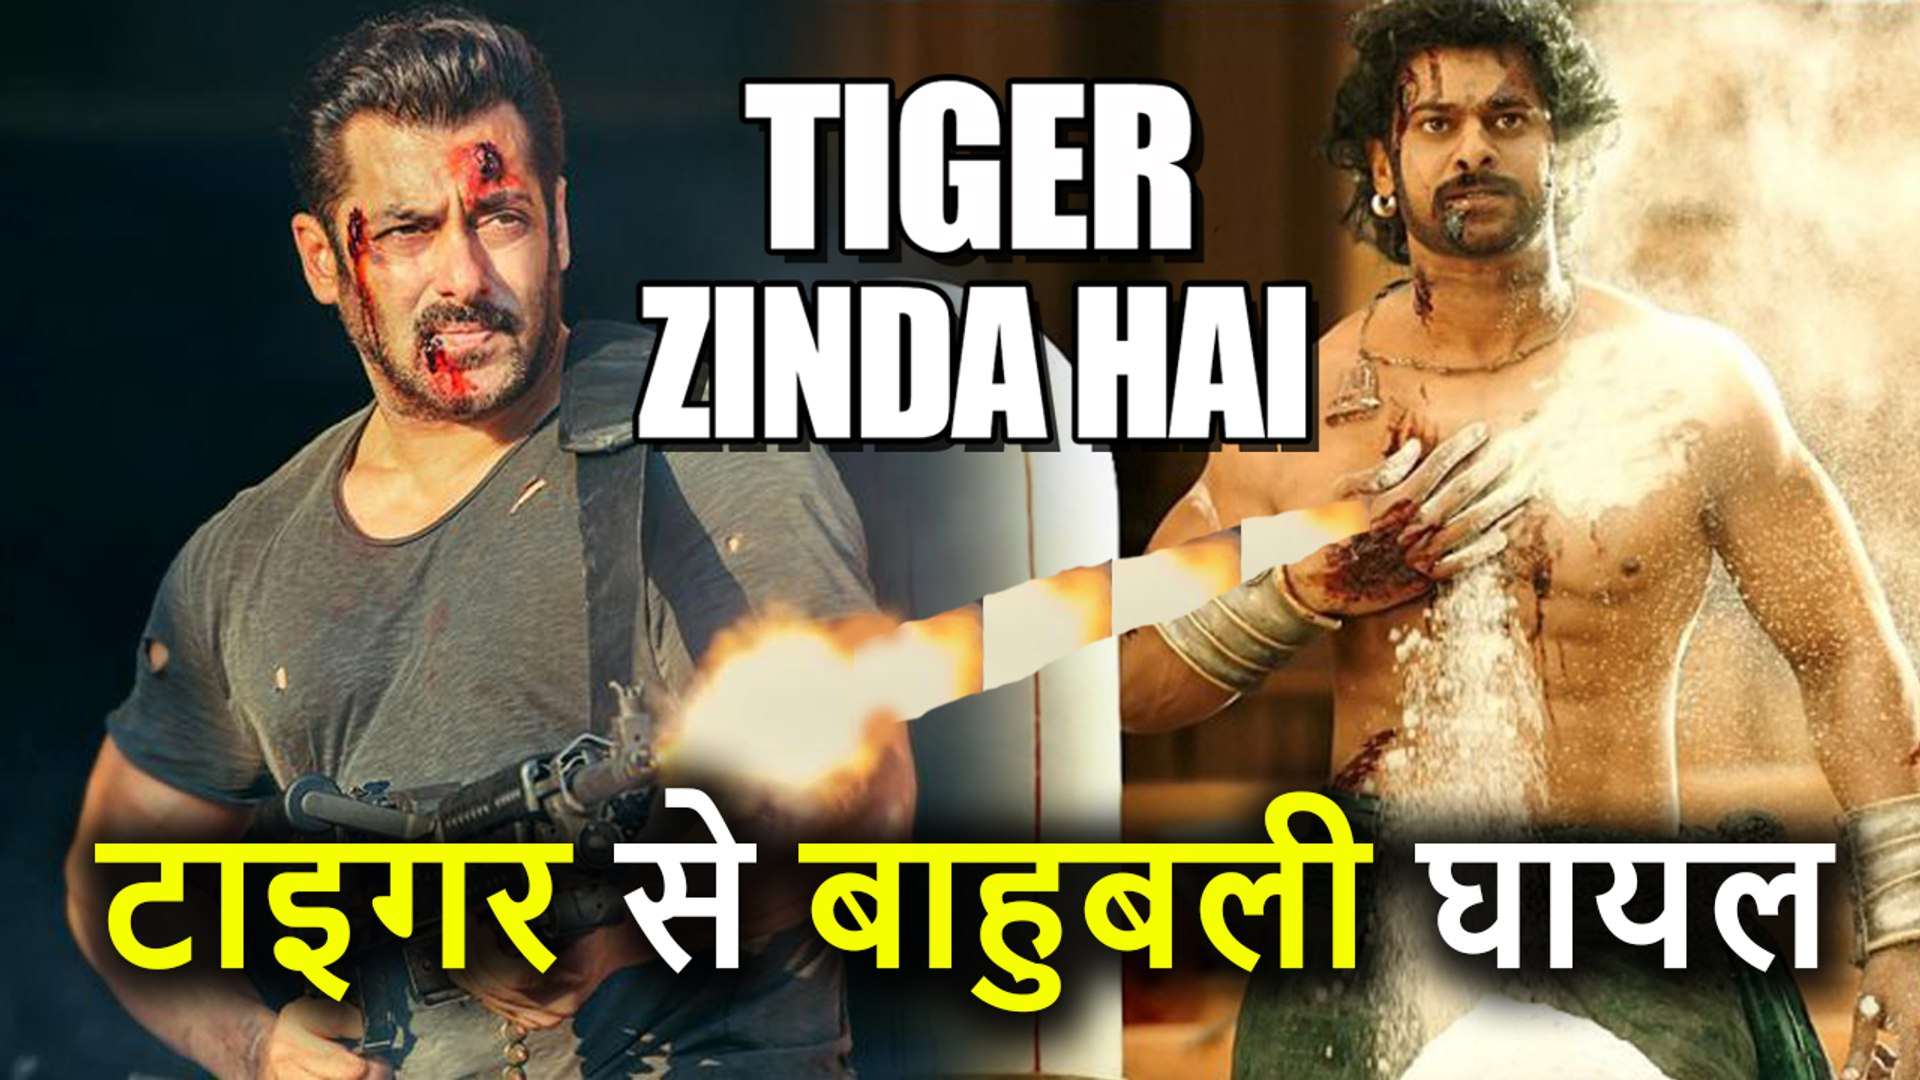 Tiger Zinda Hai Blockbuster, होगी Bumper Opening, Advance Booking में Bahubali को पछाड़ा